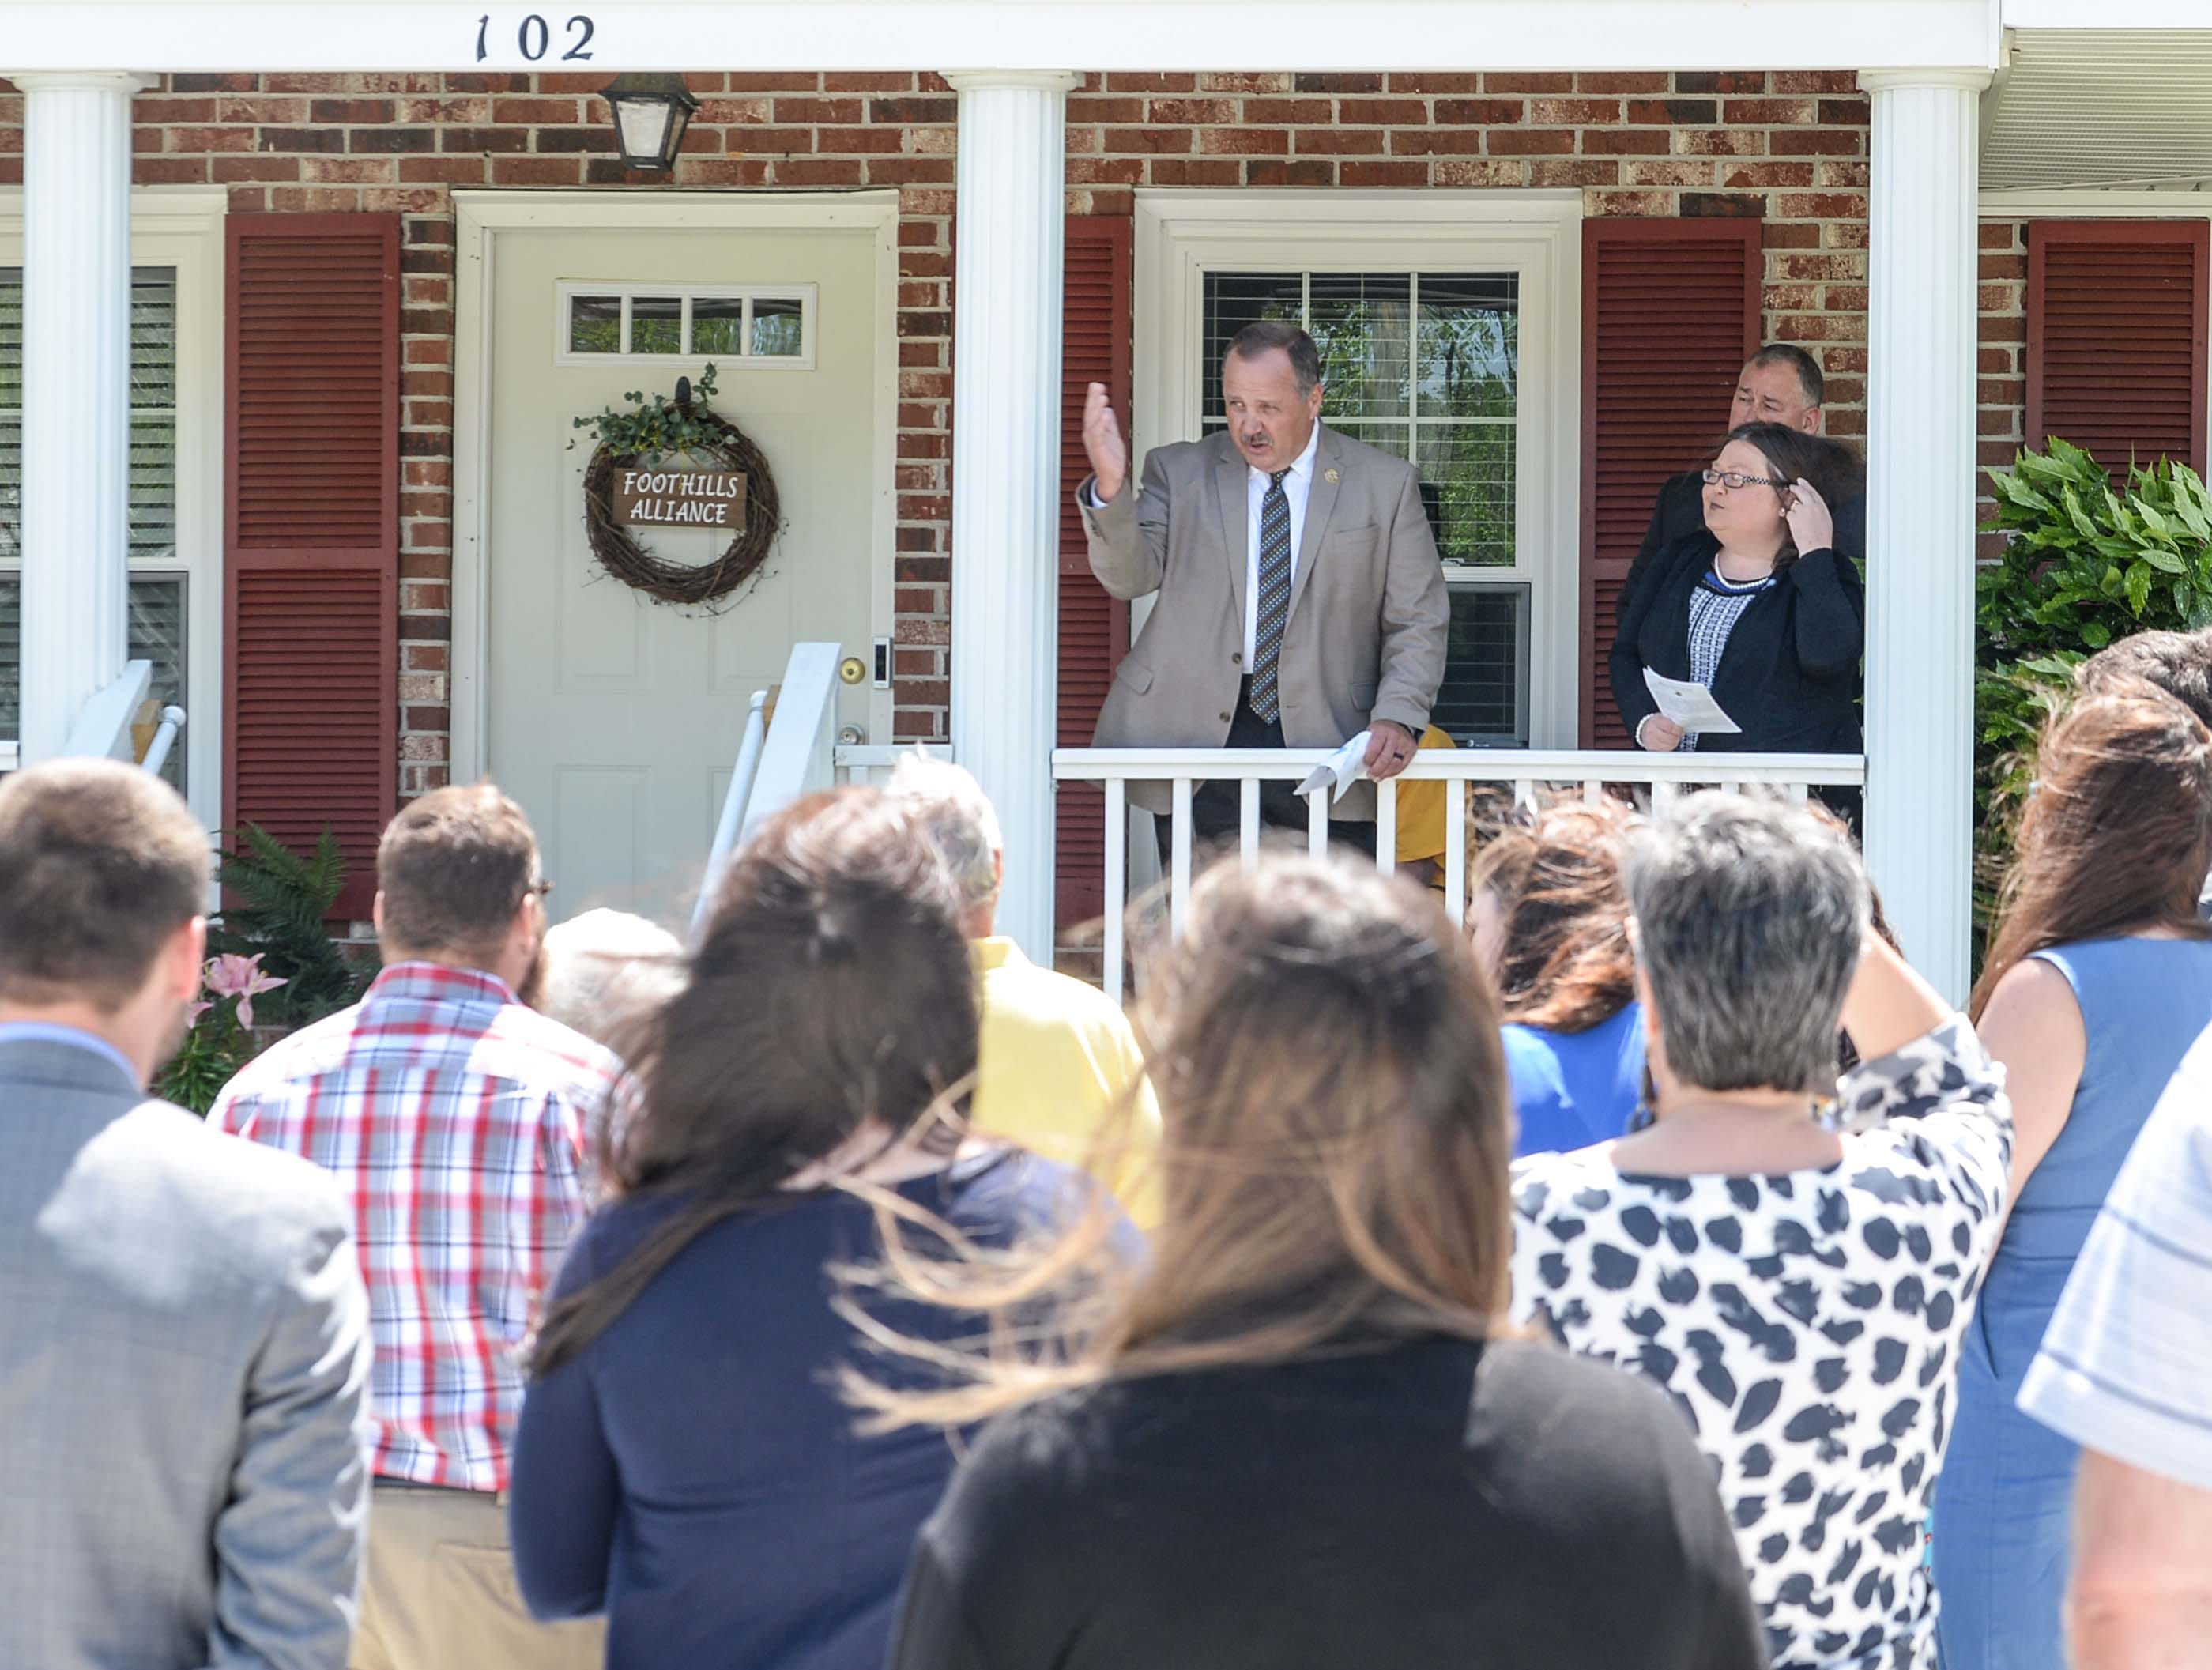 "Oconee County Sheriff Michael Crenshaw speaks during an office dedication of the Foothills Alliance Oconee County Gwynnie Bee House in Walhalla Friday. Foothills Alliance, who with partners provides education, advocacy, and treatment services to prevent sexual assault trauma and child abuse services in Anderson and Oconee Counties, branched out from their Anderson office with an office in Walhalla last August. Gwynne Ann-Marie Hess, ""Gwynnie Bee"", died in 2017 from child abuse, and the office was renamed after her Friday in the presence of family, law enforcement, Sen. Thomas Alexander, Oconee County Sheriff Michael Crenshaw, and Tenth Circuit Solicitor David Wagner."